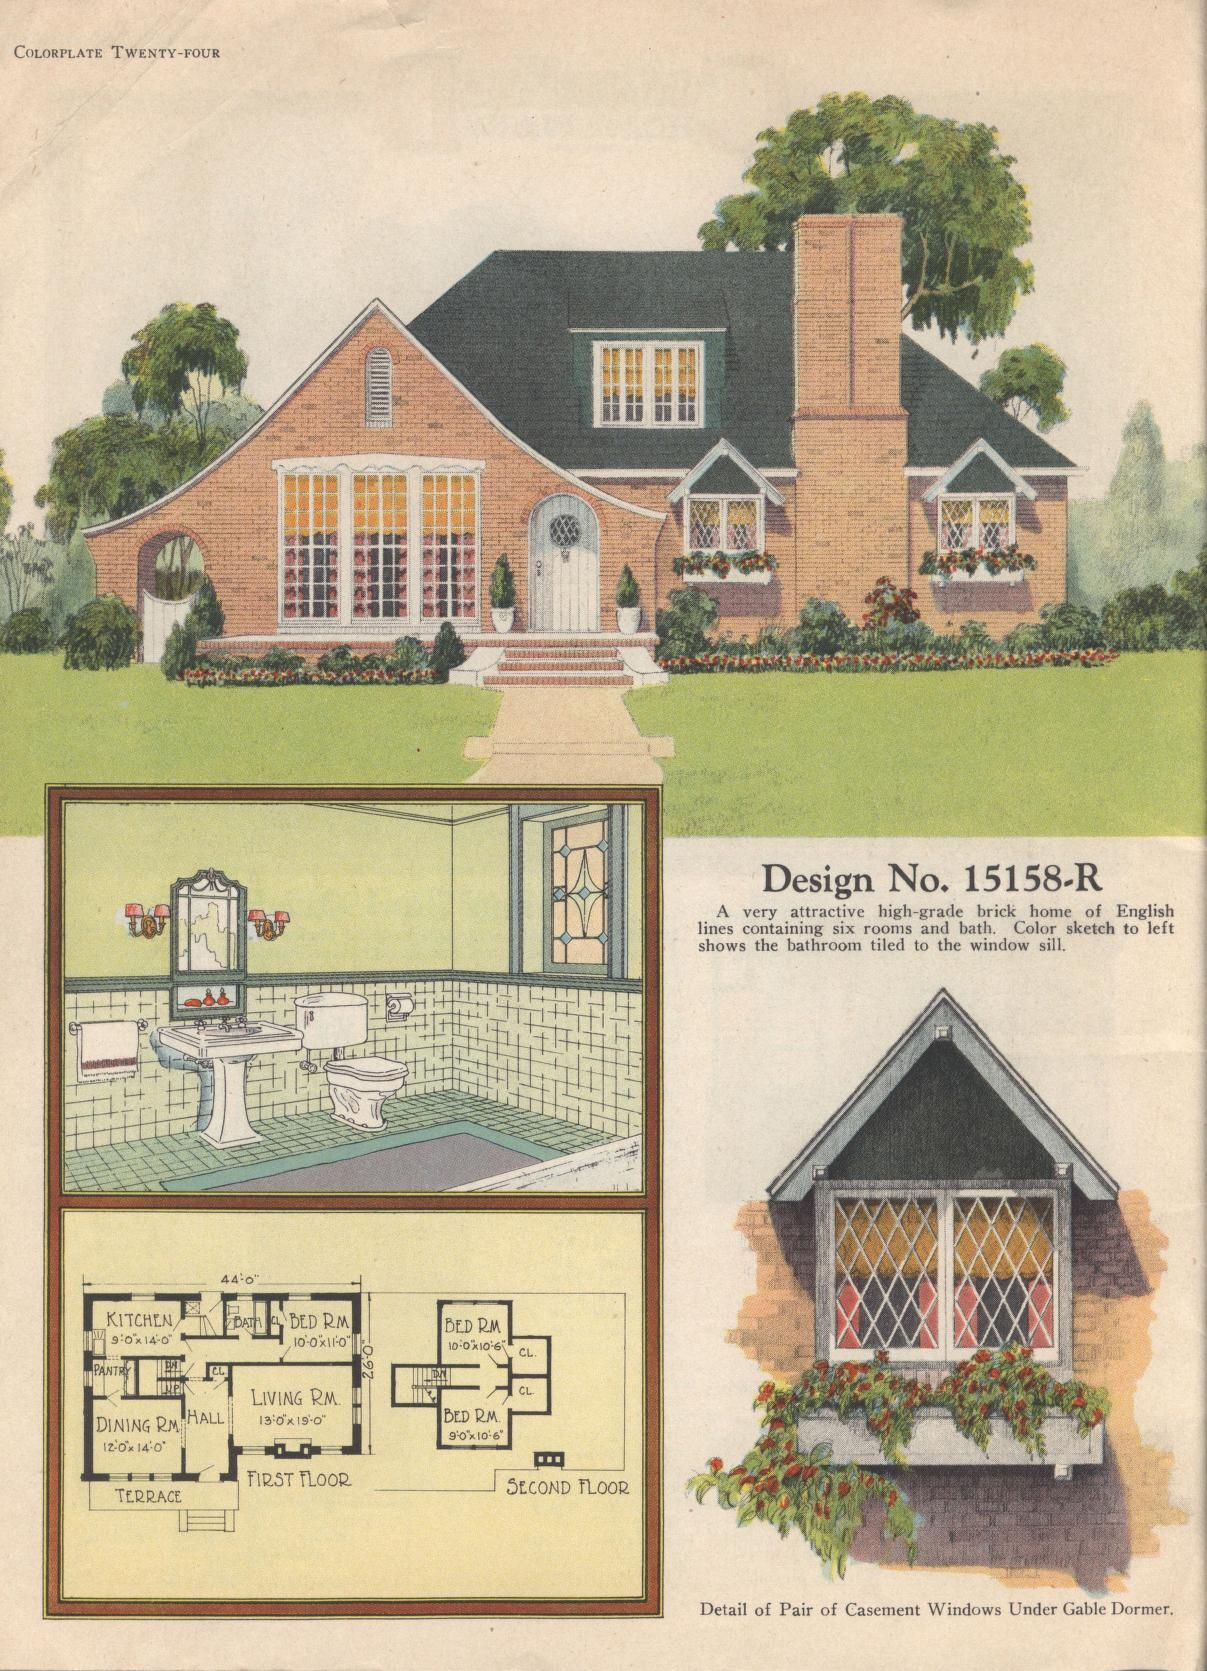 colorkeed home plans radford 1920s - Brick English Home Plans